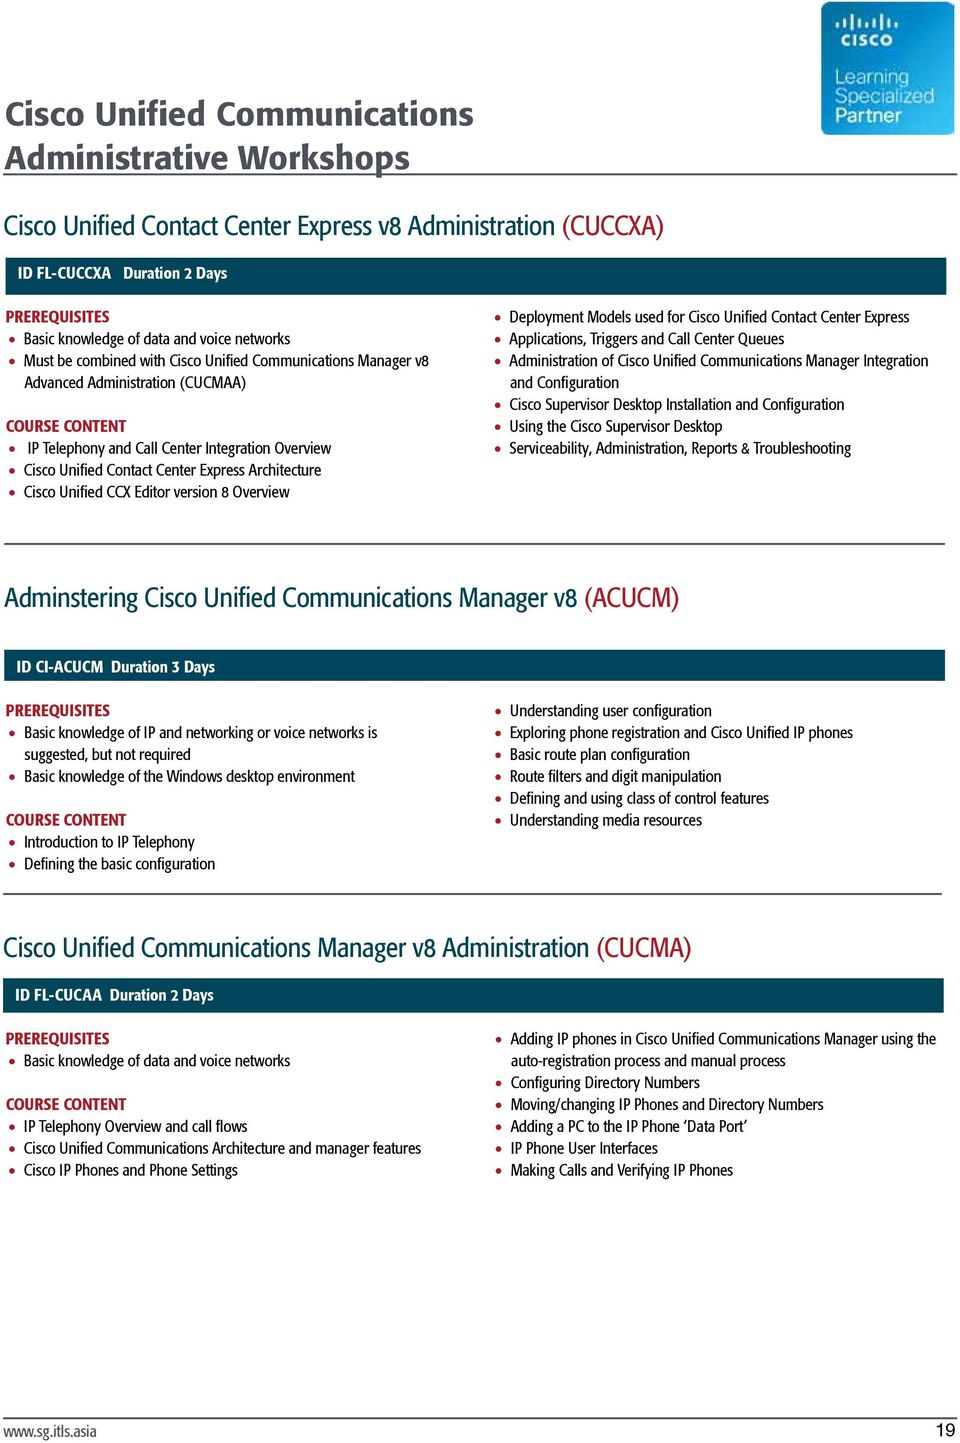 Unified CCX Editor version 8 Overview Deployment Models used for Cisco Unified Contact Center Express Applications, Triggers and Call Center Queues Administration of Cisco Unified Communications